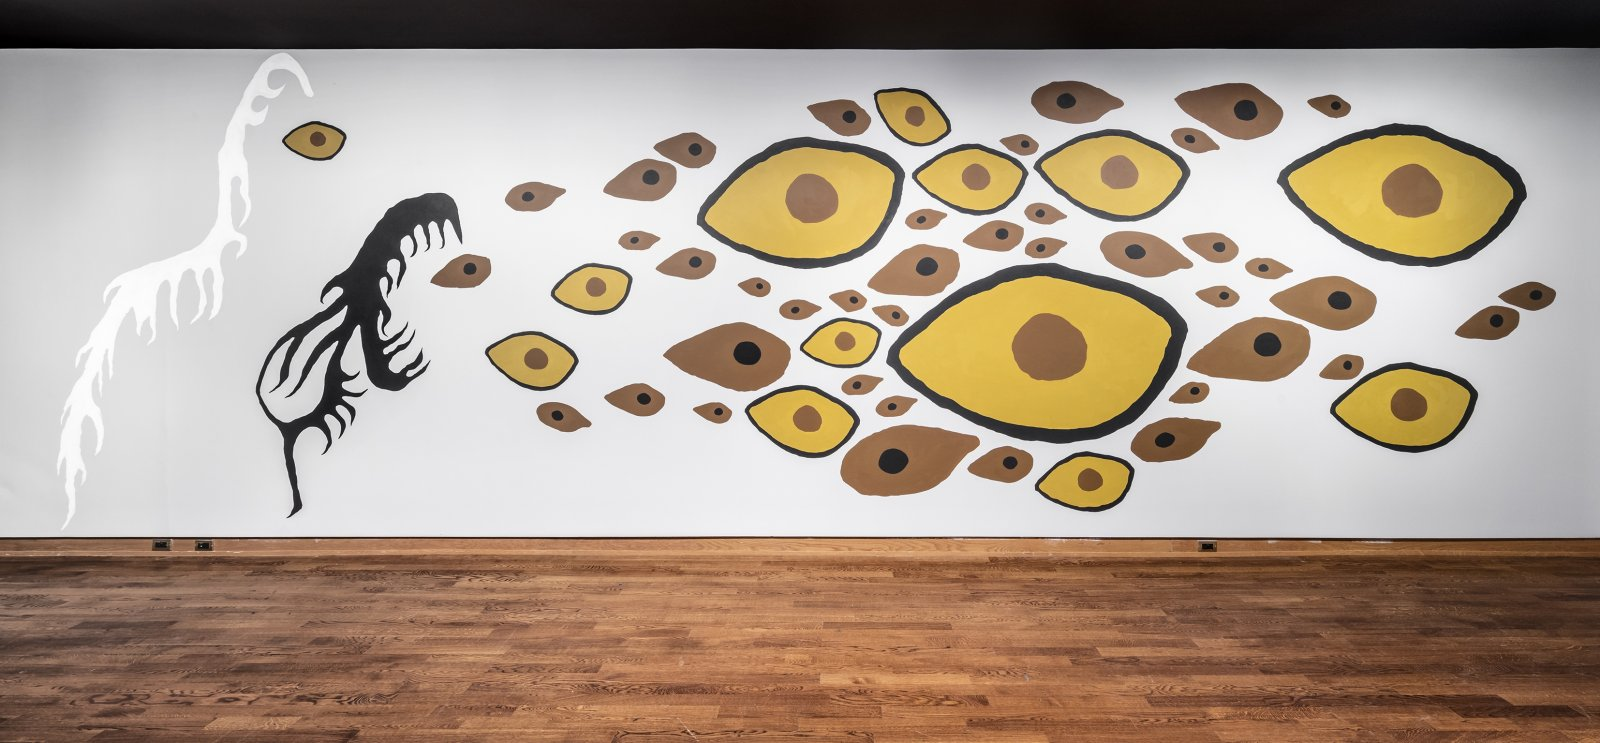 Duane Linklater, Earth Mother Hair, Indian Hair, and Earth Mother Eyes, Indian Eyes, Animal Eyes, 2017, paint on interior wall of the Art Museum at the University of Toronto, from a series of small paintings of eyes and hair based on a photo of Norval Morrisseau's Earth Mother and Her Children (1967), painting labour by John Abrams, absence of the artist, dimensions variable. Installation view, In Dialogue, Art Museum, Toronto, Canada, 2017